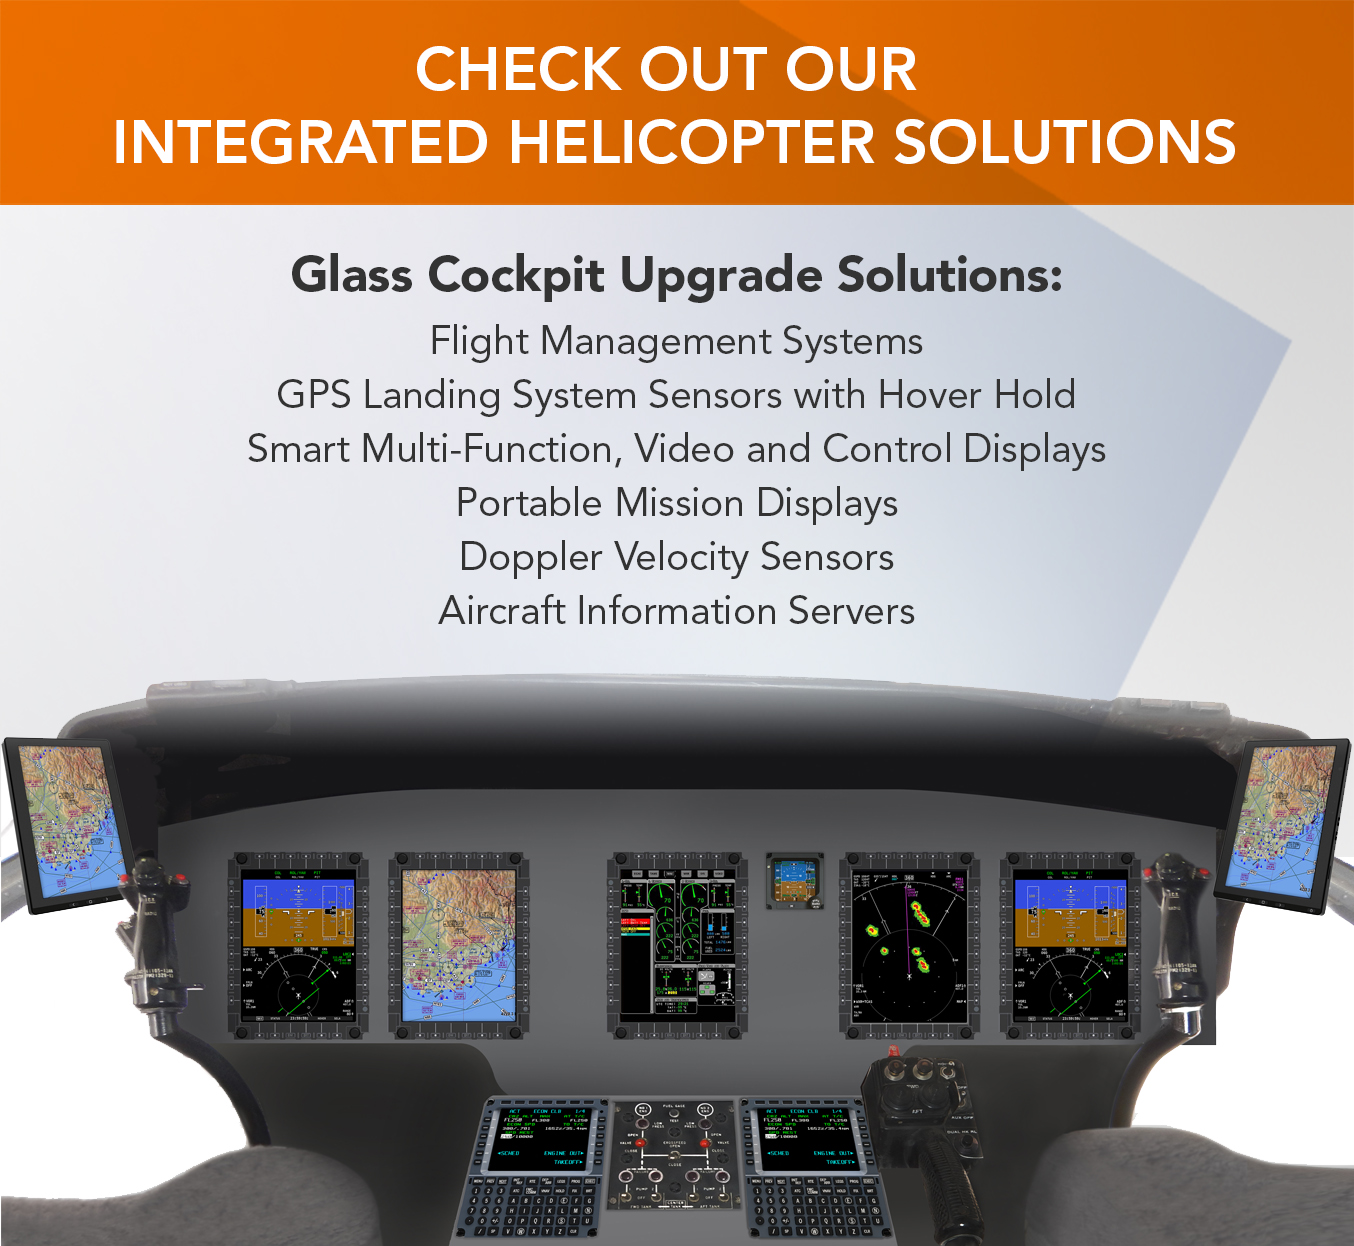 Integrated Helicopter Solutions (IHS)